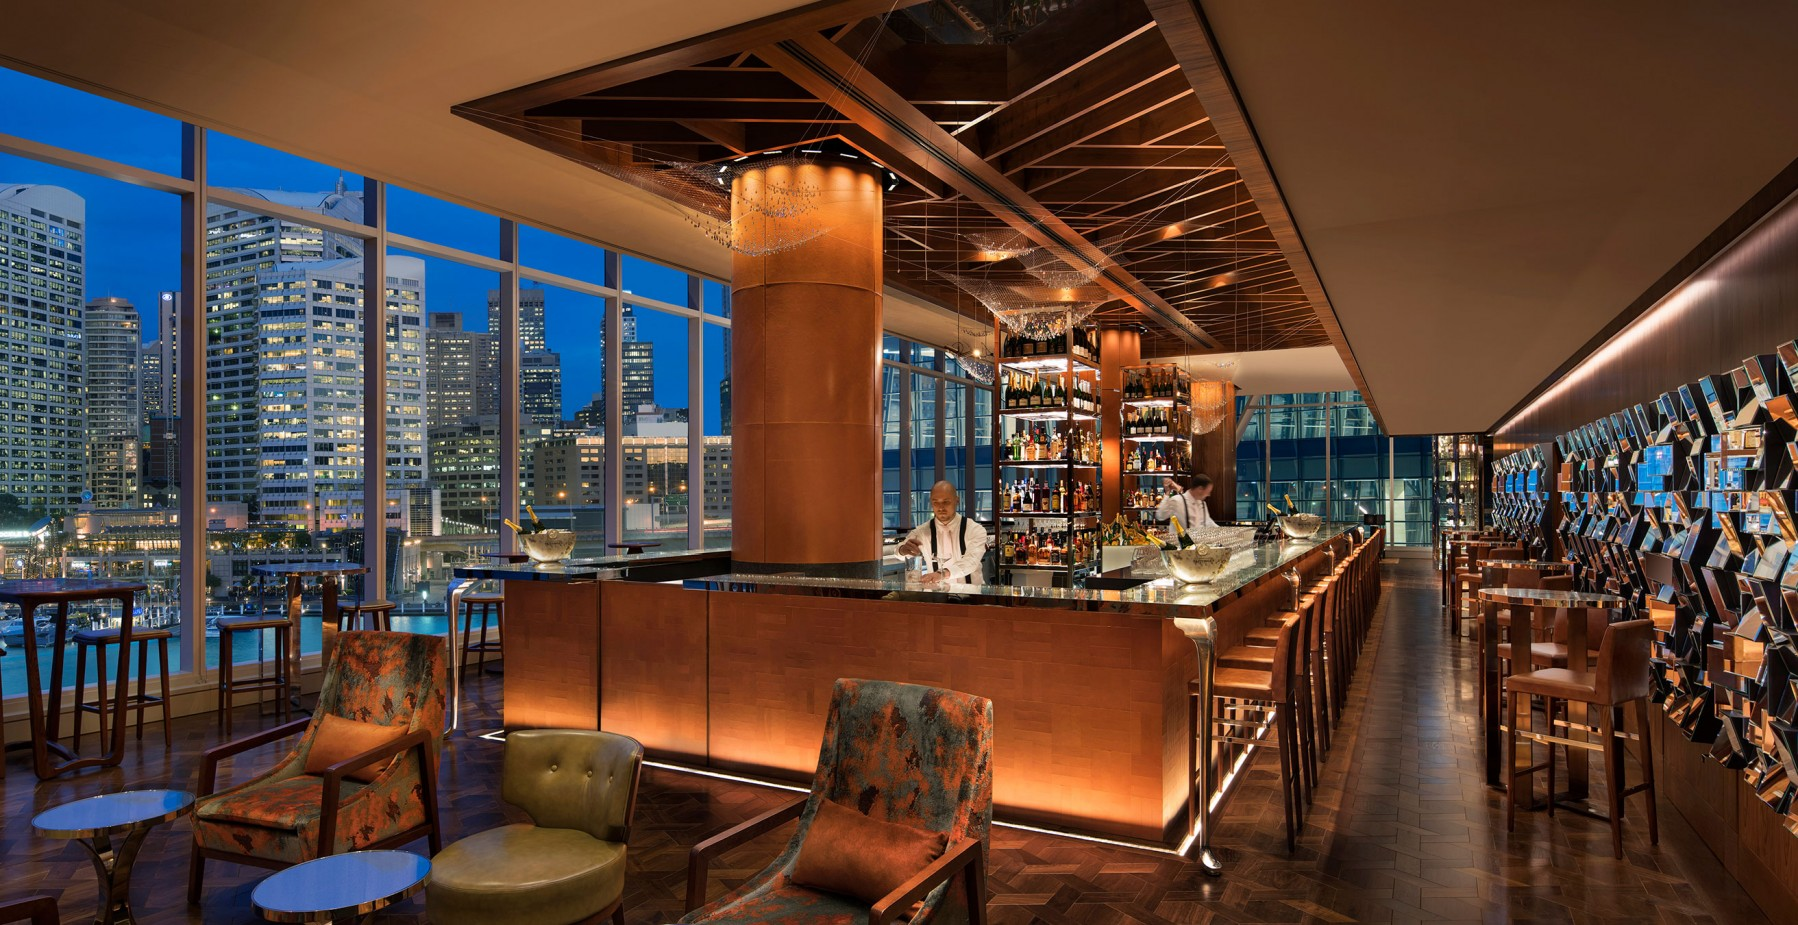 Sofitel Sydney Darling Harbour Luxury Hotel Official Site